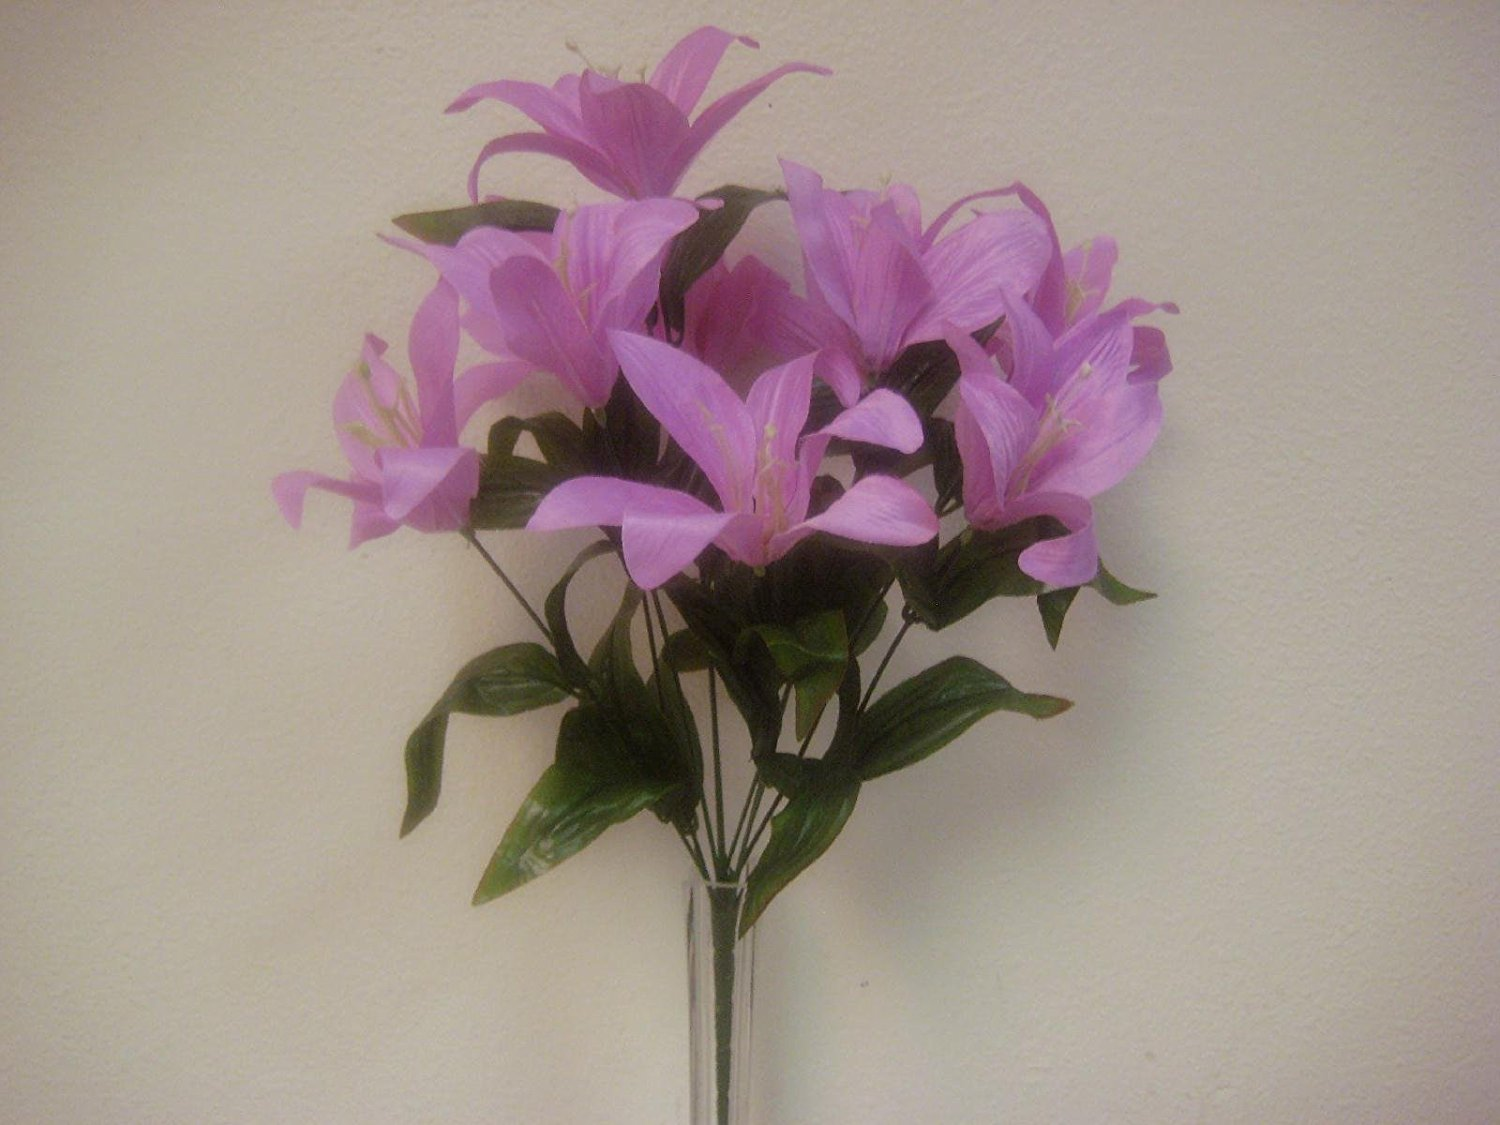 Cheap artificial tiger lily find artificial tiger lily deals on get quotations 2 bushes lavender tiger lily artificial silk flowers 1 x 10 bouquet 4069lv izmirmasajfo